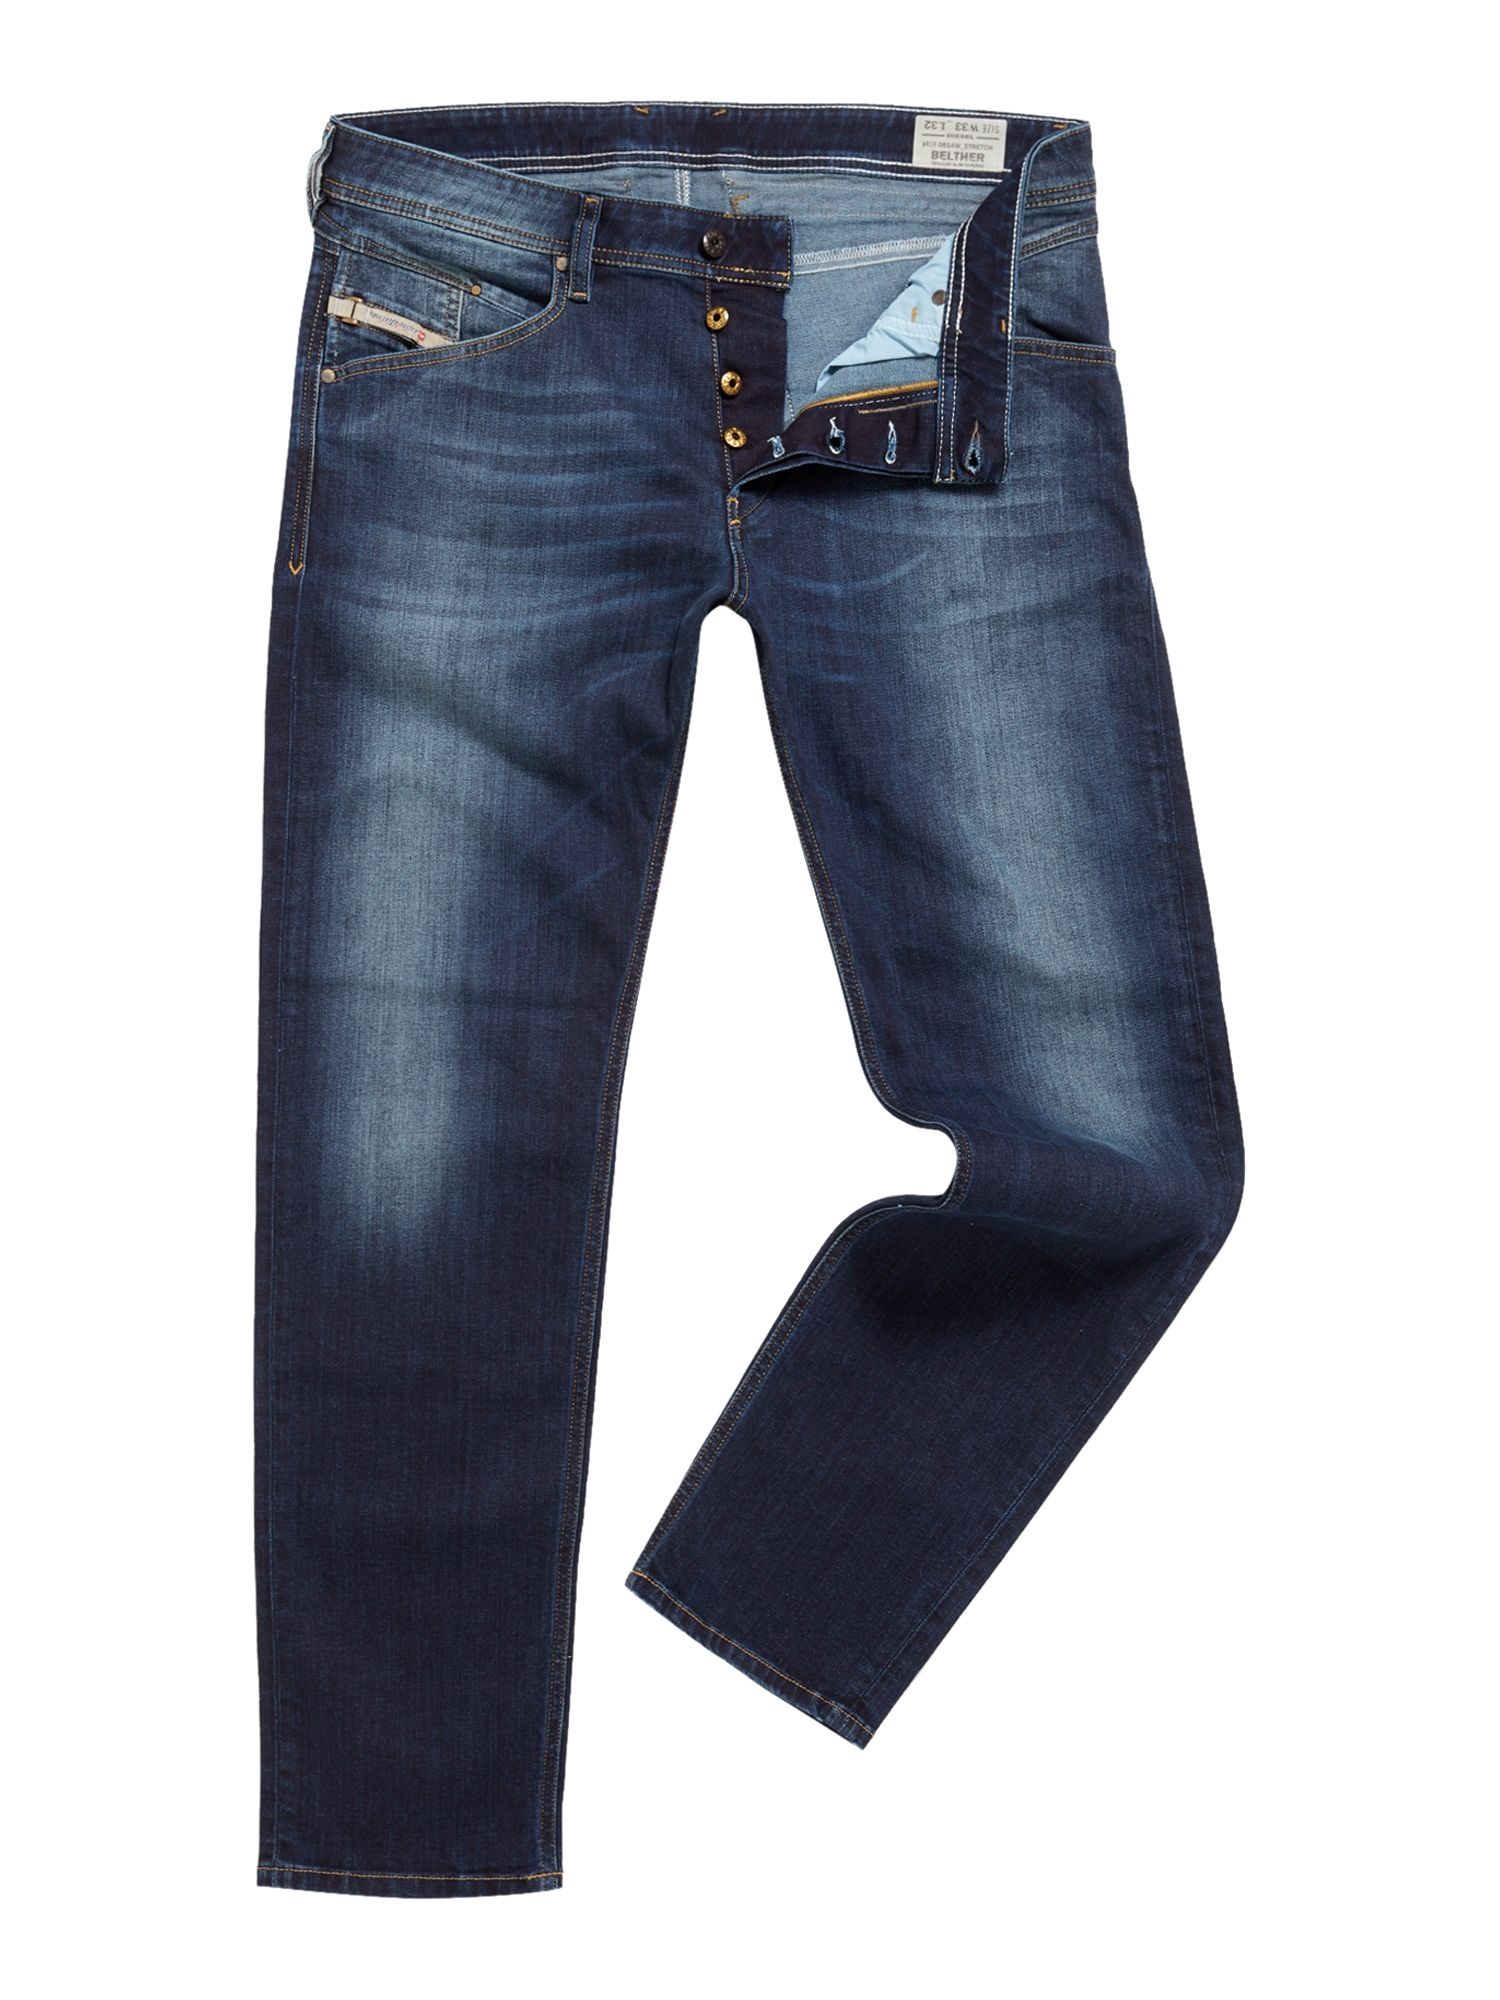 Mens Belther 814w Tapered Fit Stretch Jeans, Denim Dark Wash